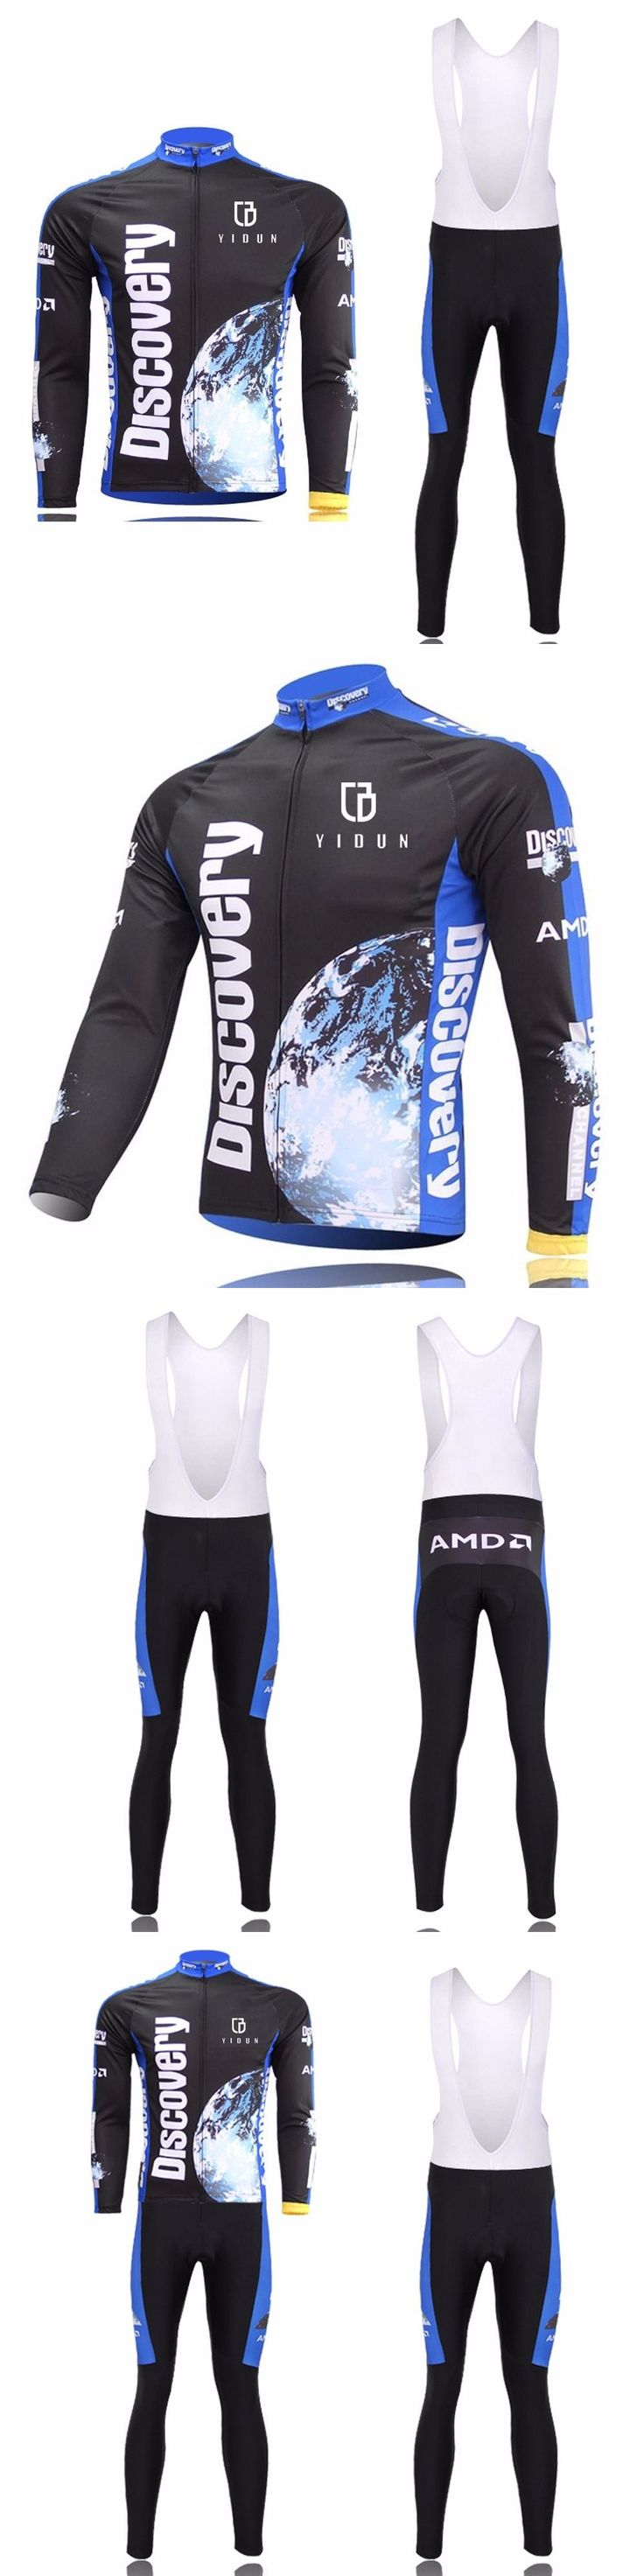 Jersey and Pant Short Sets 177852: Discovery Cycling Bibs Kit Mtb Bike Long Sleeve Bicycle Jerseys And (Bib) Shorts BUY IT NOW ONLY: $36.99